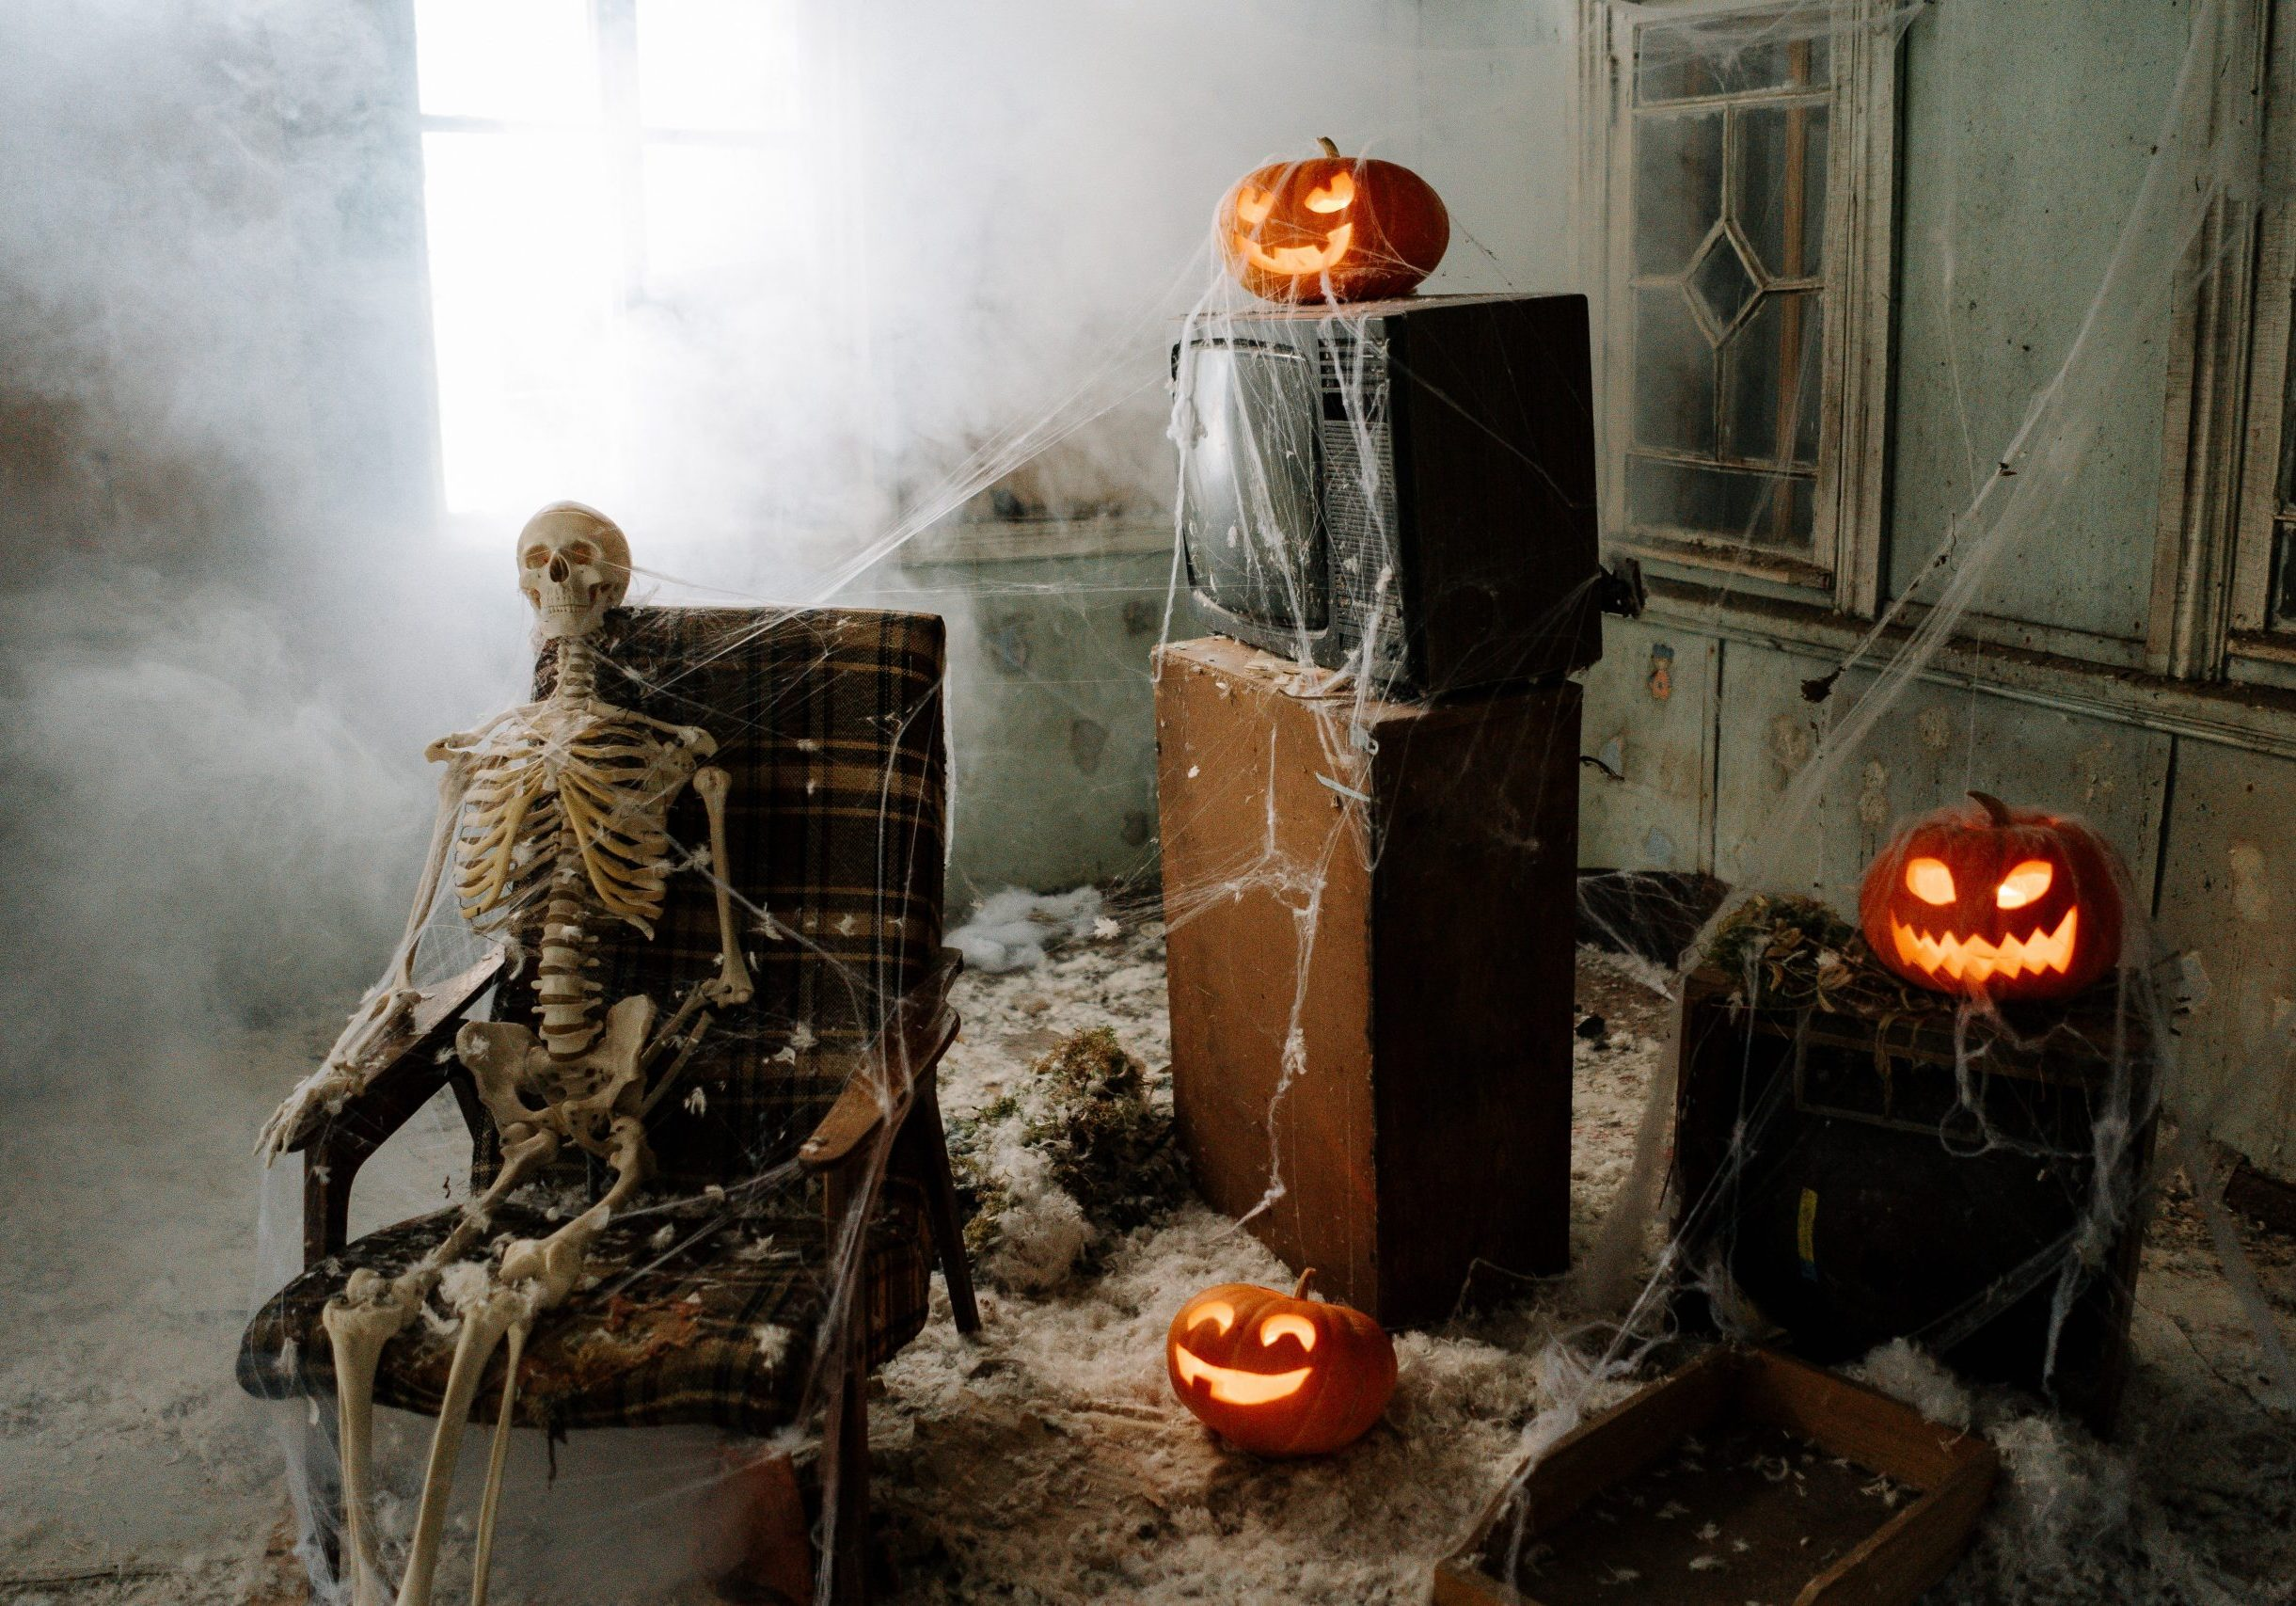 Photograph of halloween haunt attraction with skeleton, jack o'lantern and tube TV, all covered in spider cob webs